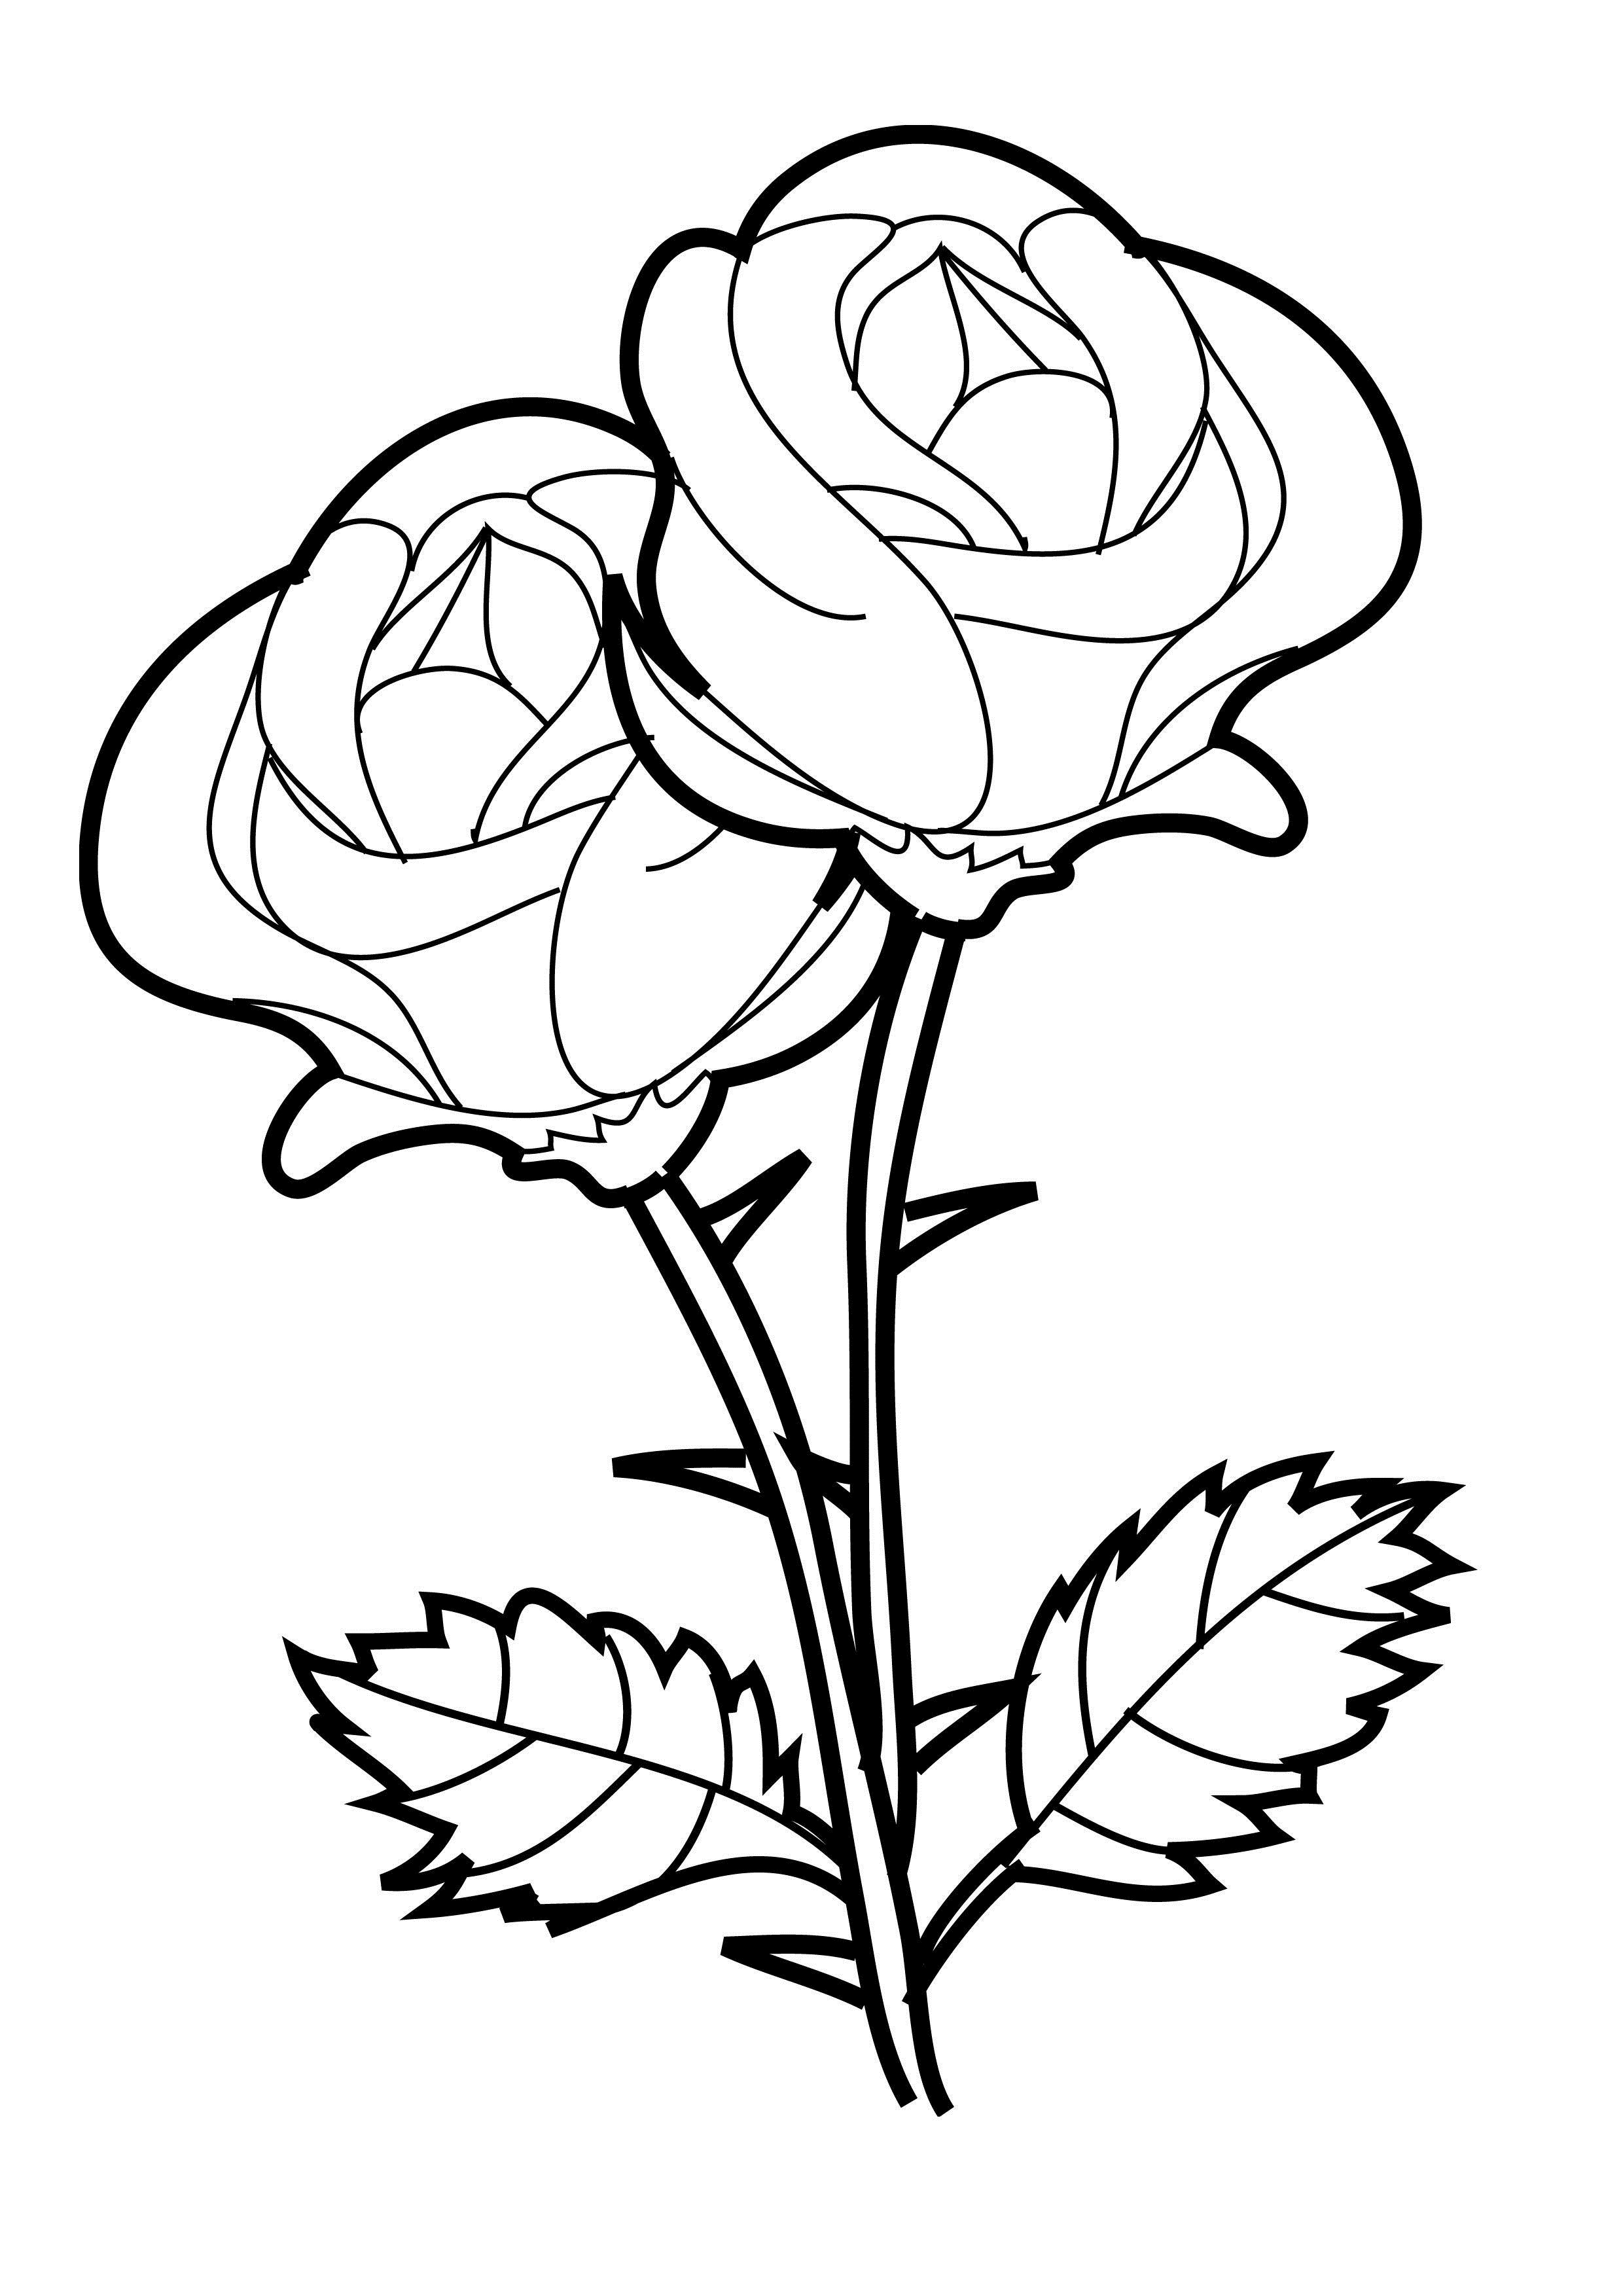 coloring picture rose free printable roses coloring pages for kids rose coloring picture